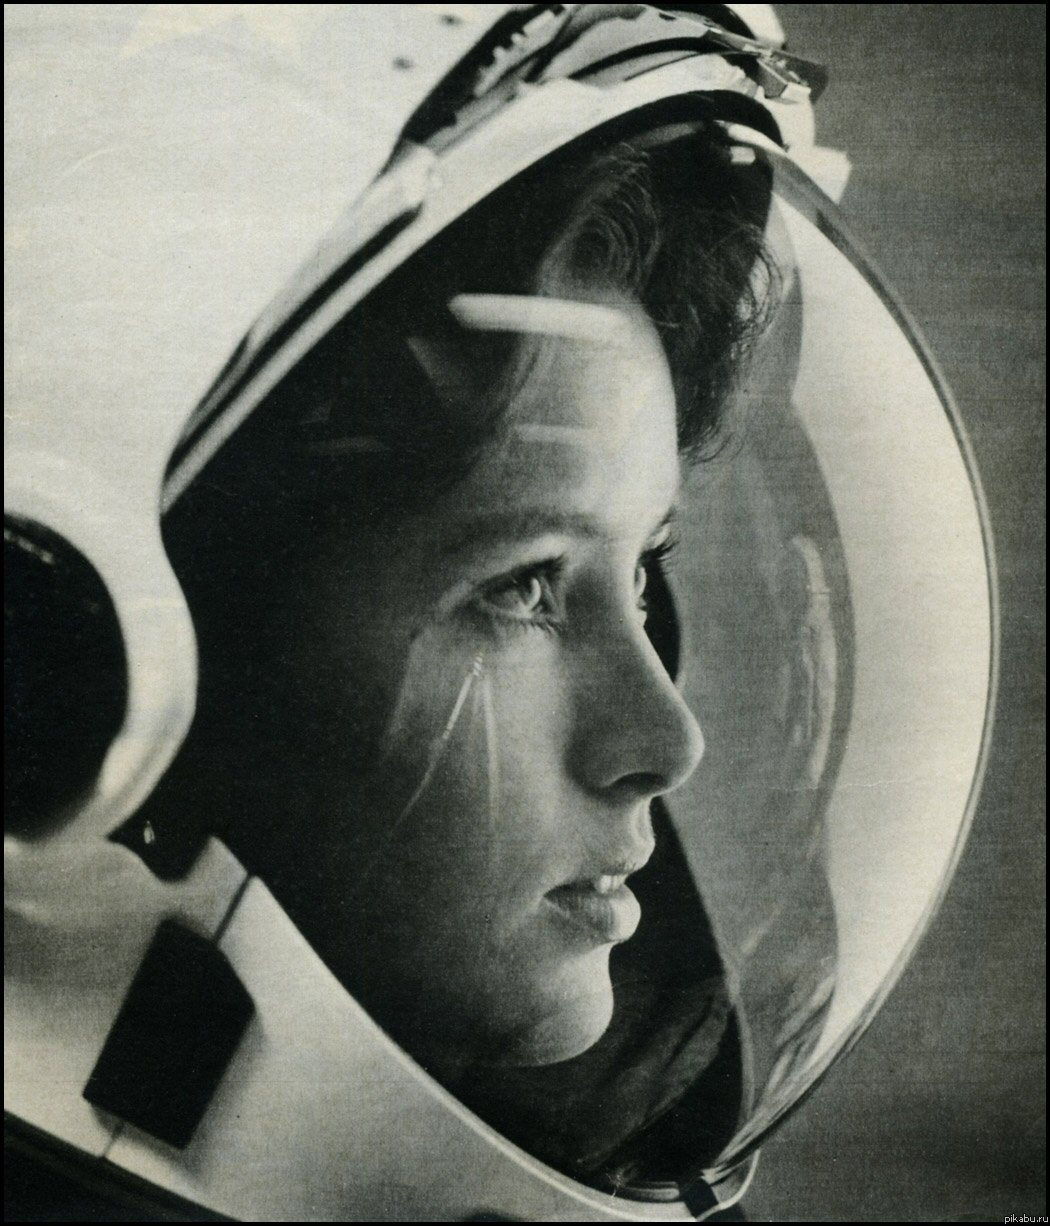 Dr. Anna Fisher, an American chemist and a NASA Astronaut. She graduated from UCLA with a BS in Chemistry in 1971, an MD (specializing in emergency medicine) in 1976, and eventually an MS in Chemistry in 1987. She was in the first class of women selected to go into space in 1978. Dr. Fisher's flight into space (on the Discovery) launched on November 8, 1984, a little over a year after the birth of her first child. She was the first mother to fly into space, and the crew's flight patch was designed with six stars: Five representing each of the crew members, and one star for her daughter. She also kept a picture of her baby girl on her shuttle locker while she was in space, and later gifted each of her girls part of the necklace she wore on the flight.